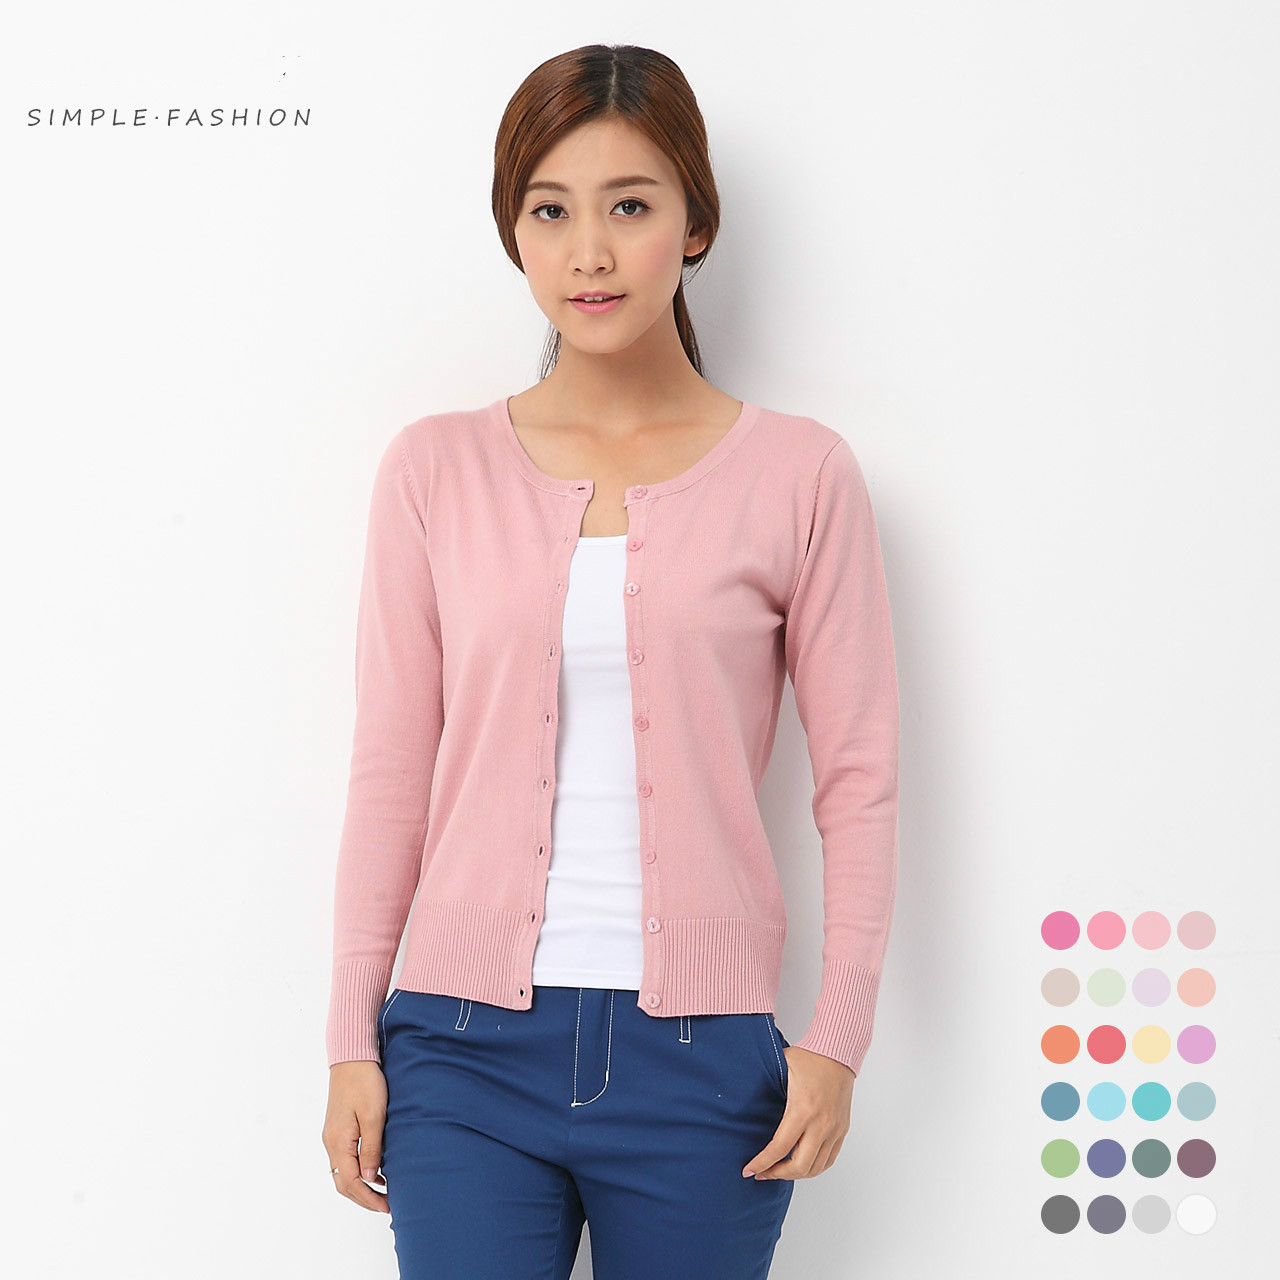 Compare Prices on Cheap Cardigan Sweaters- Online Shopping/Buy Low ...